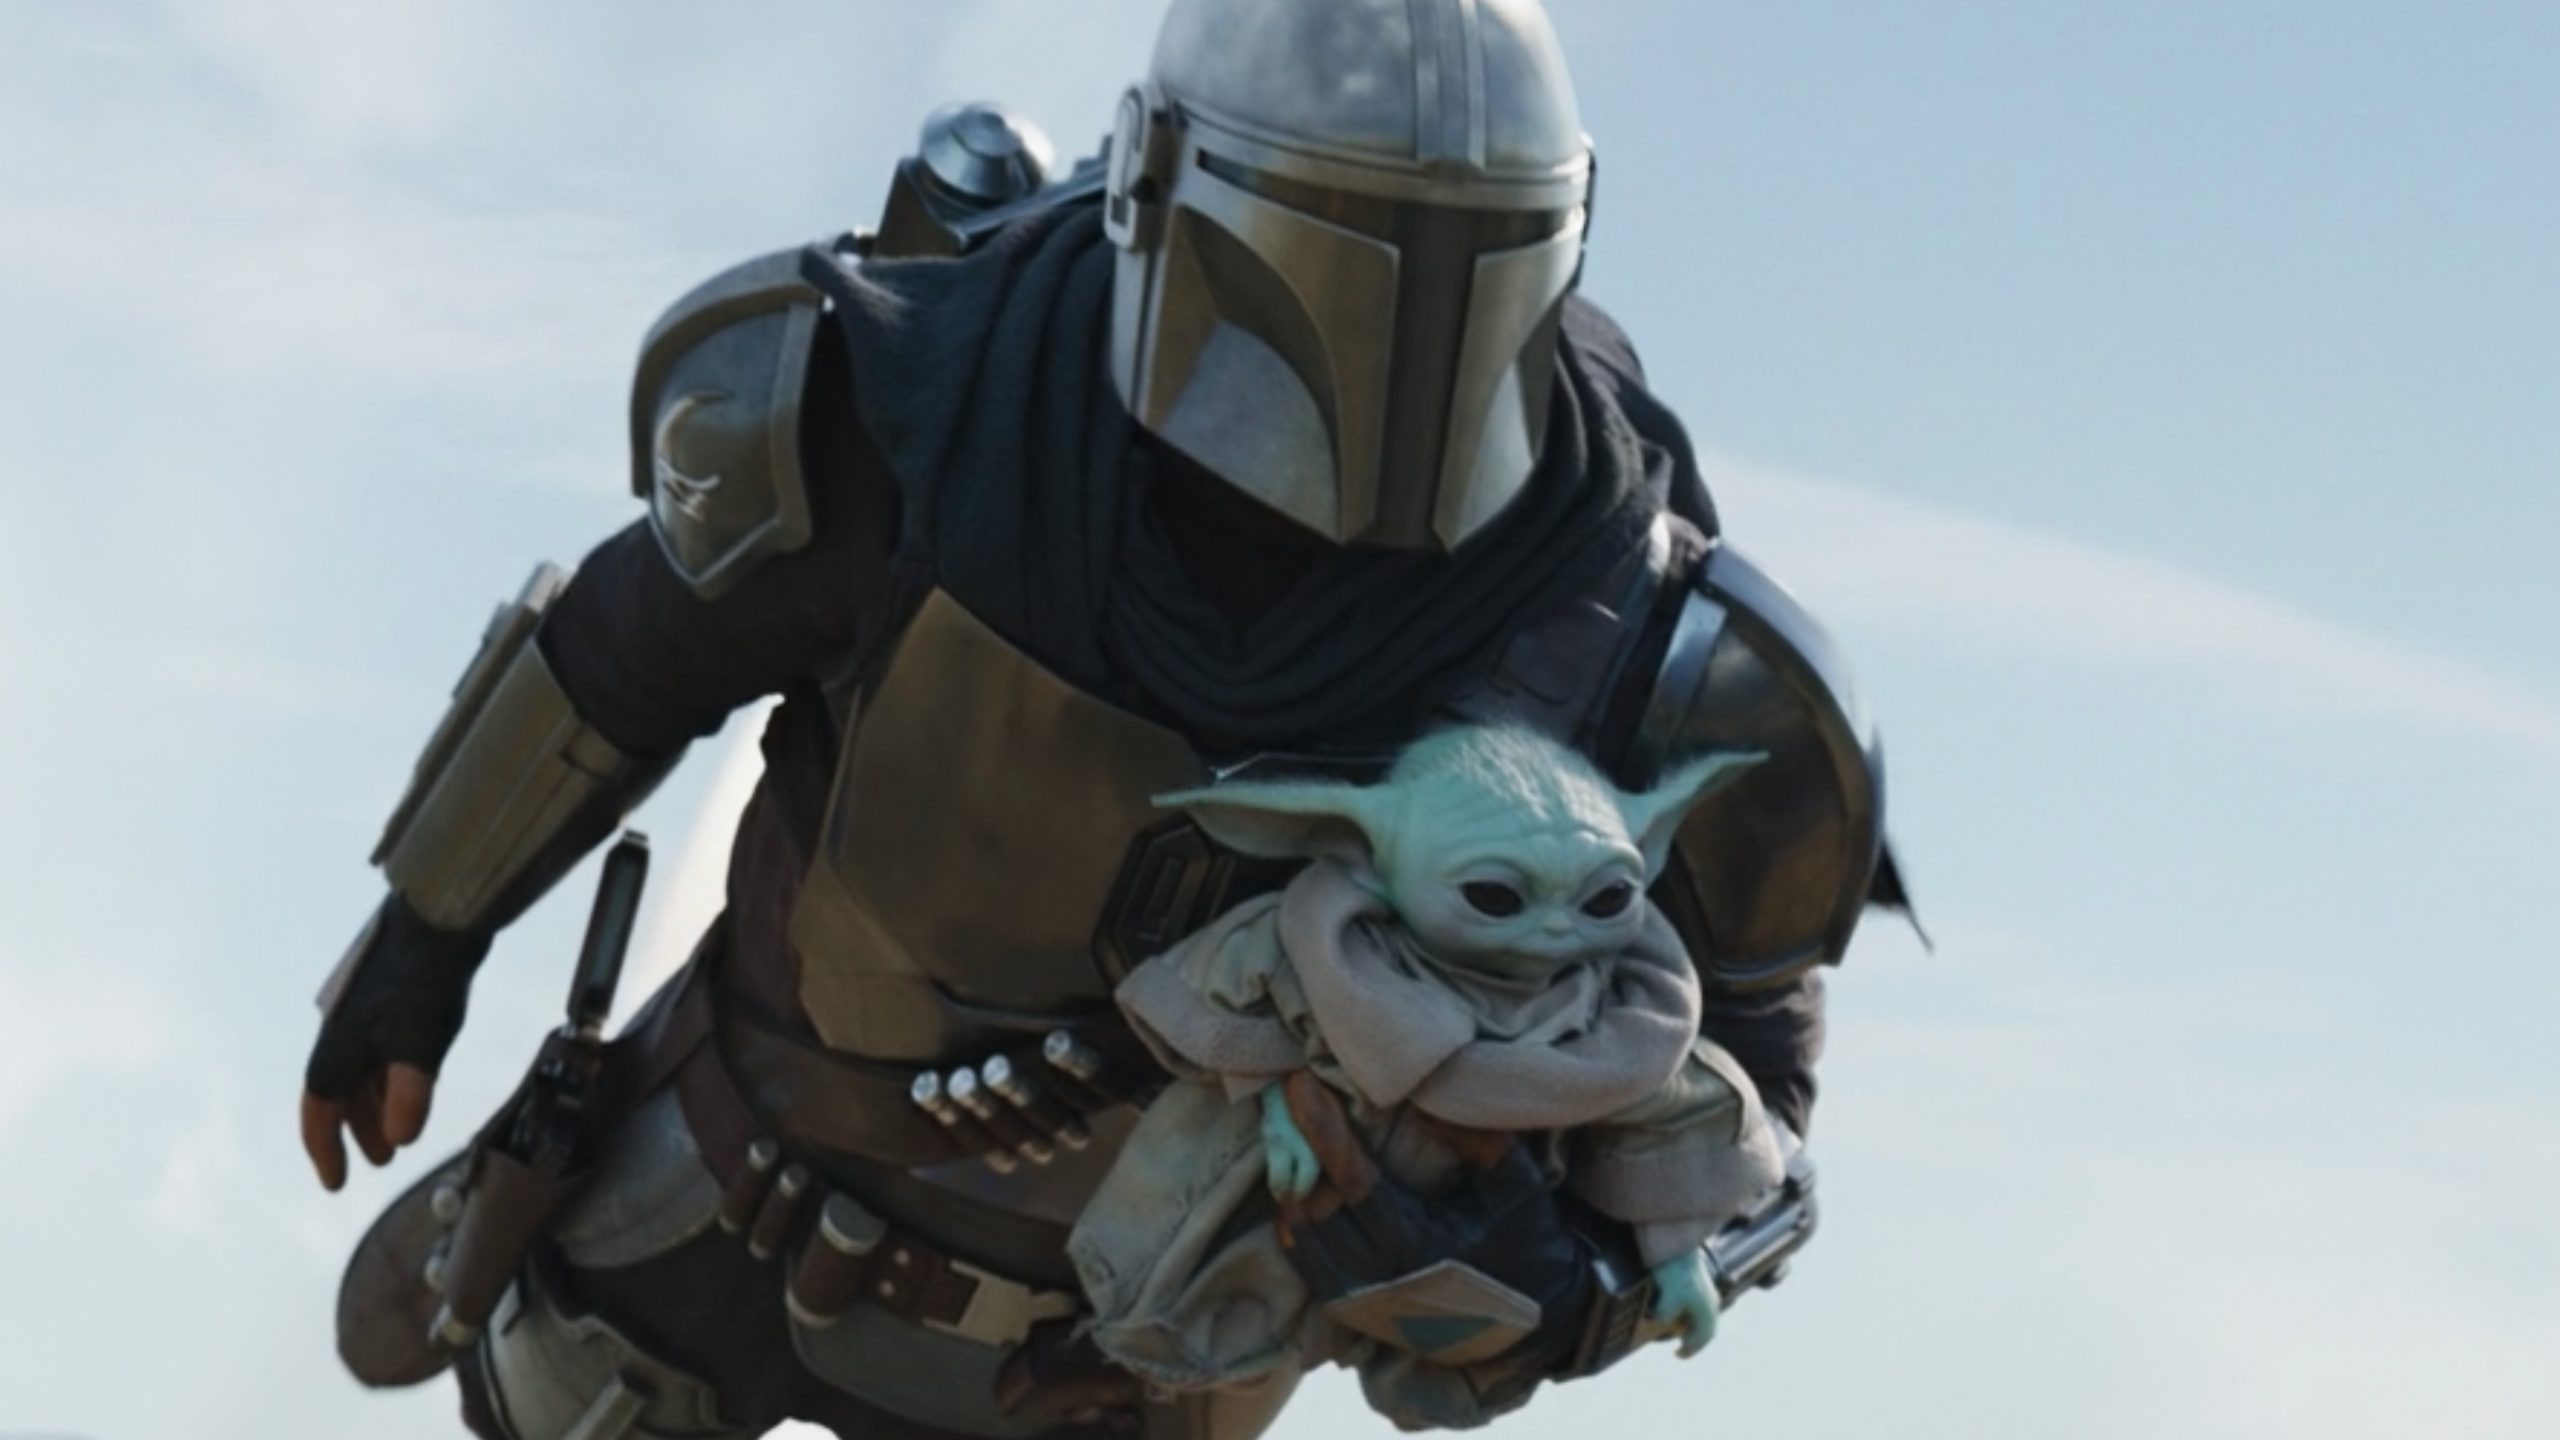 Grogu and Din flying in The Mandalorian